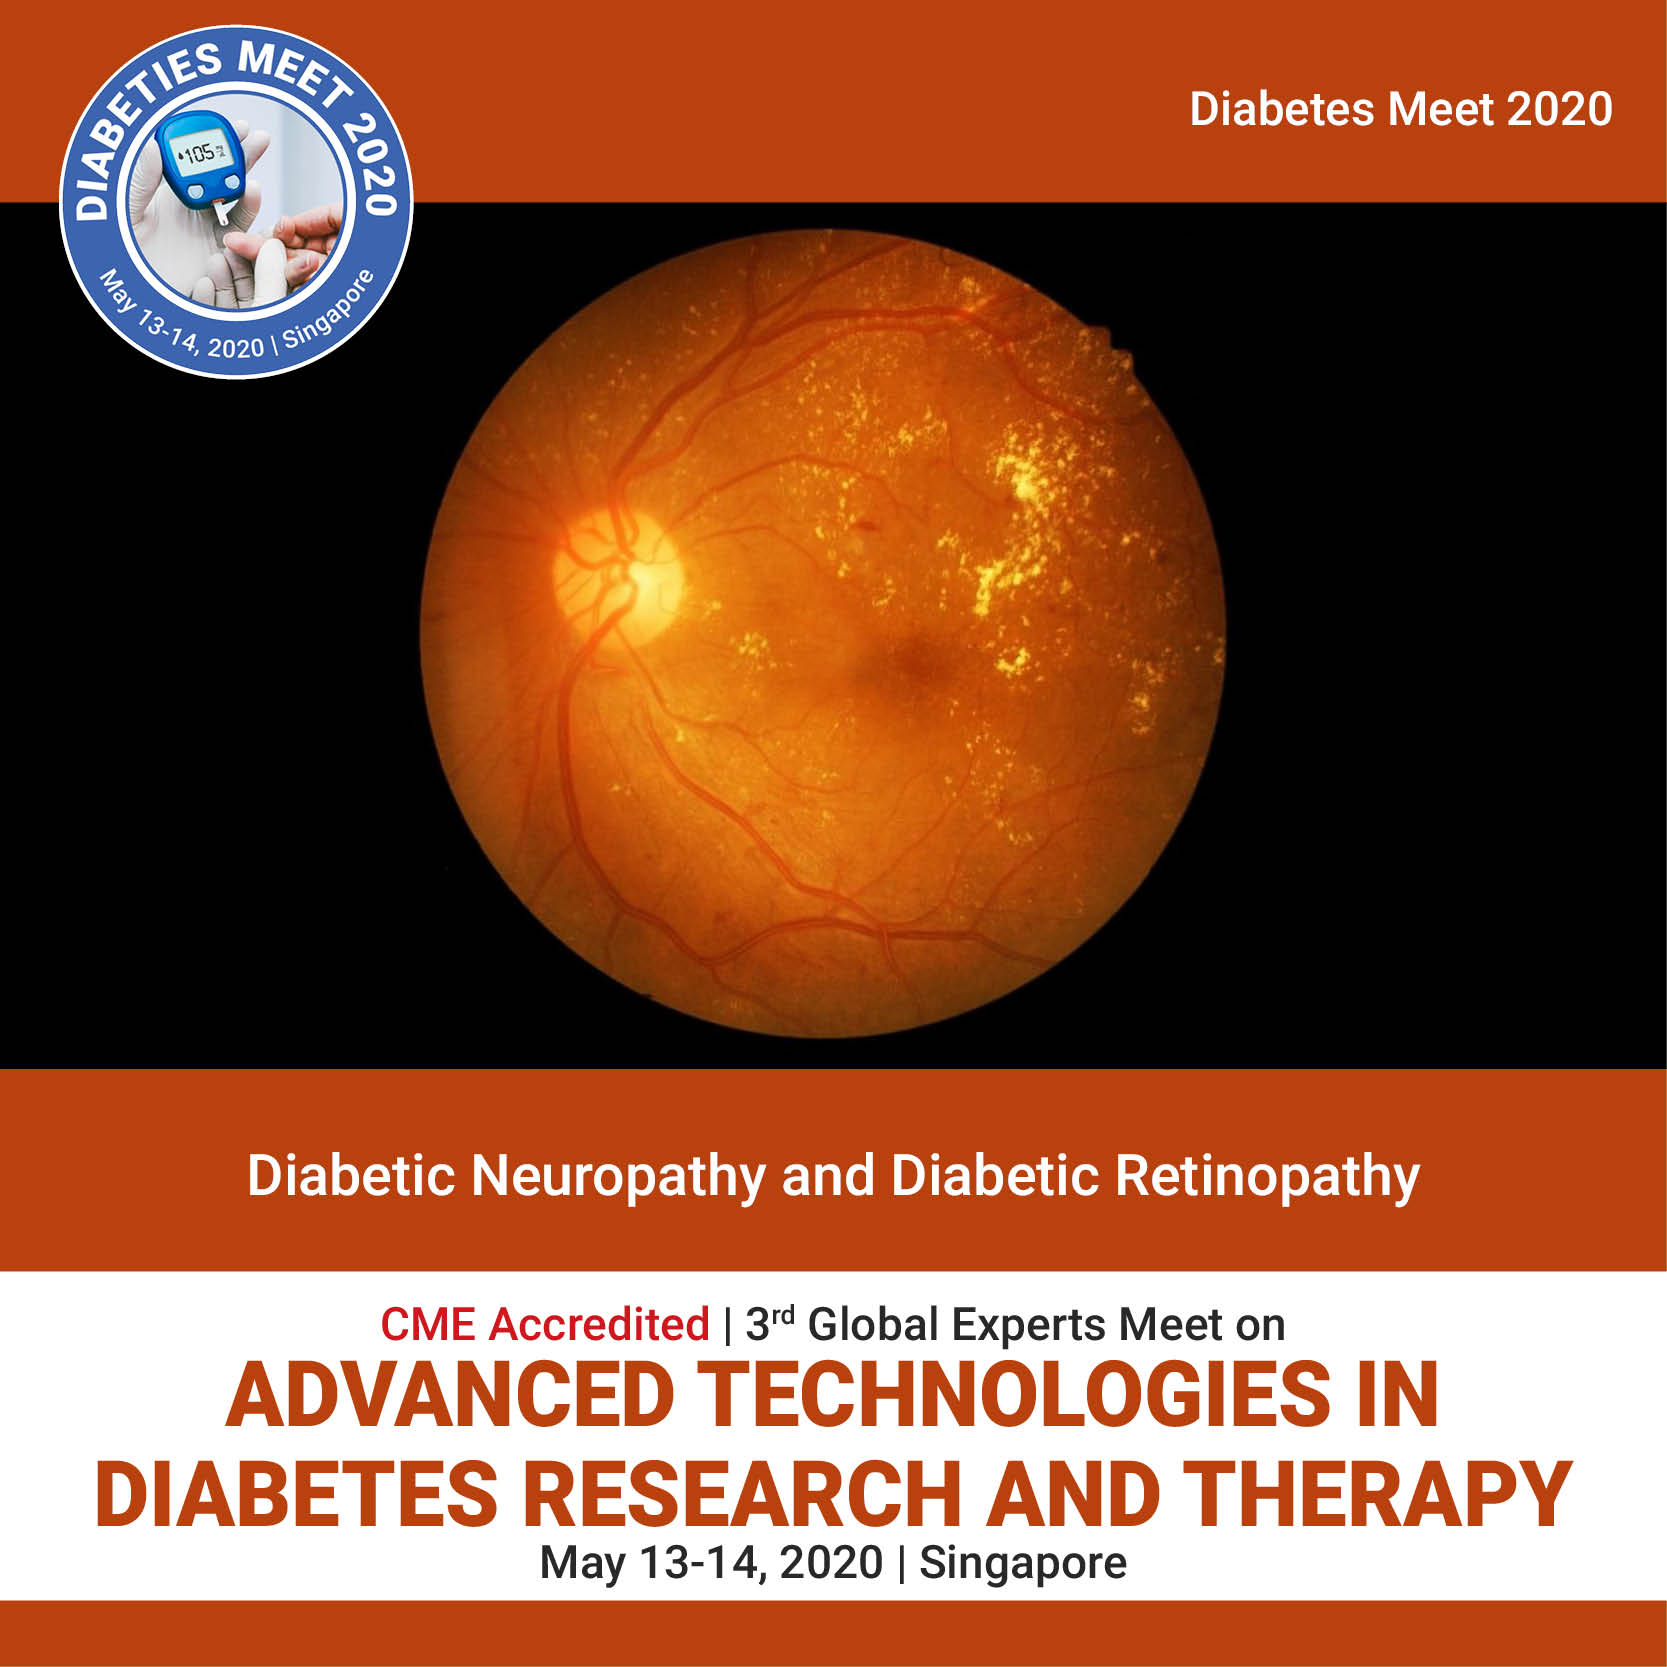 Diabetic Neuropathy and Diabetic Retinopathy Photo